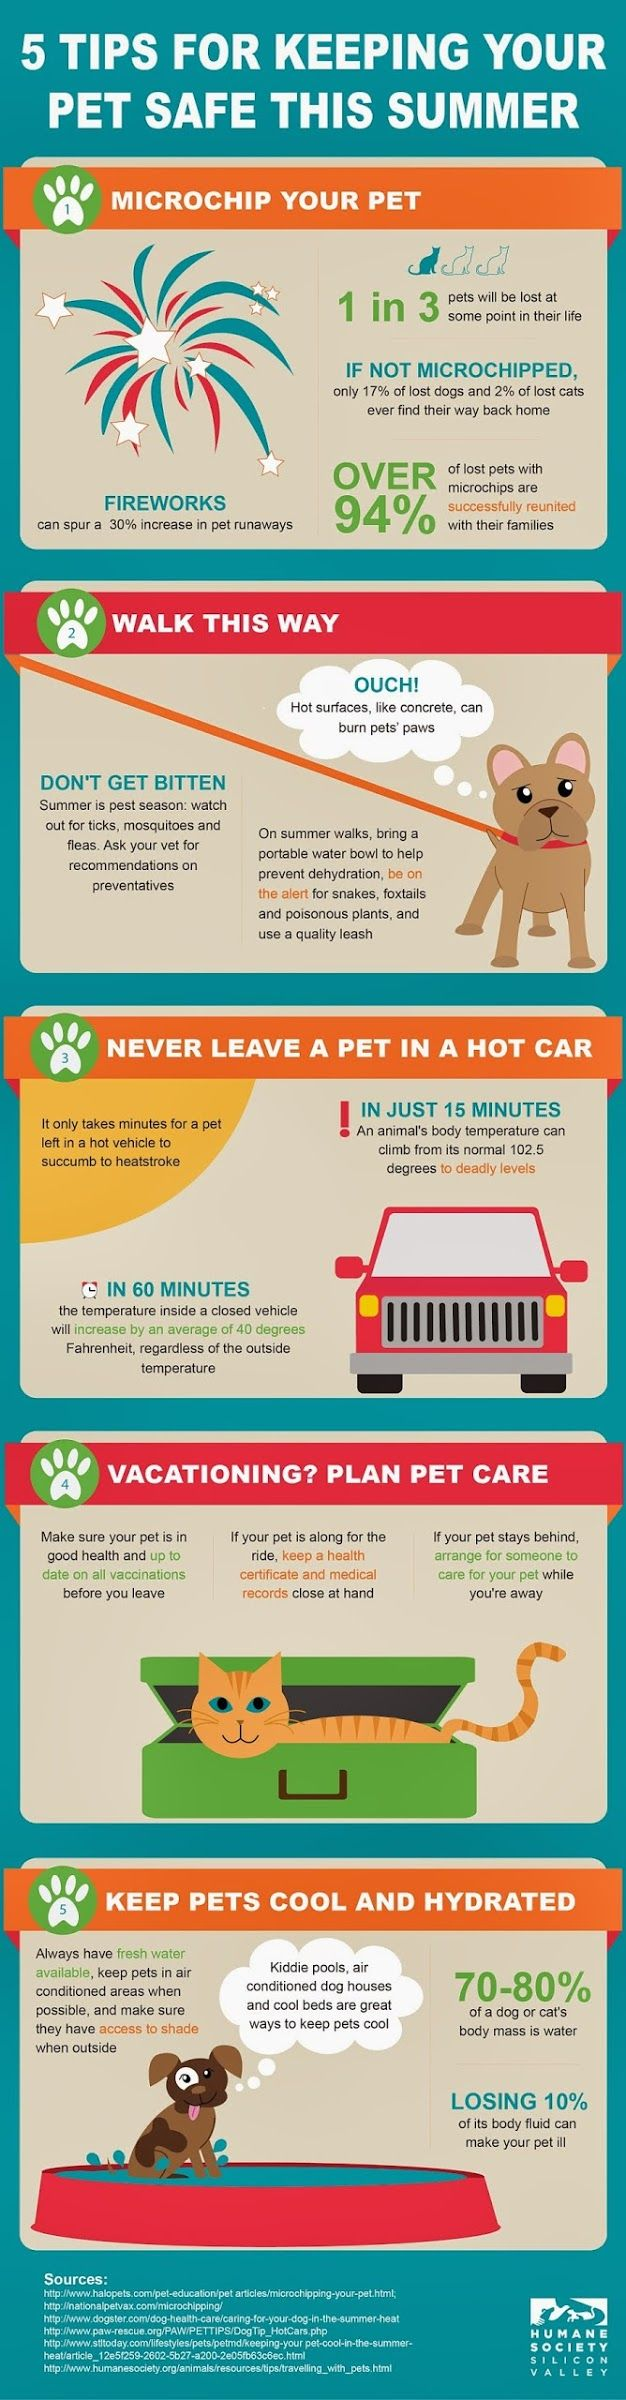 5 Tips for Keeping Your Pet Safe This Summer Infographic (Hot cement is the one people think of least.)